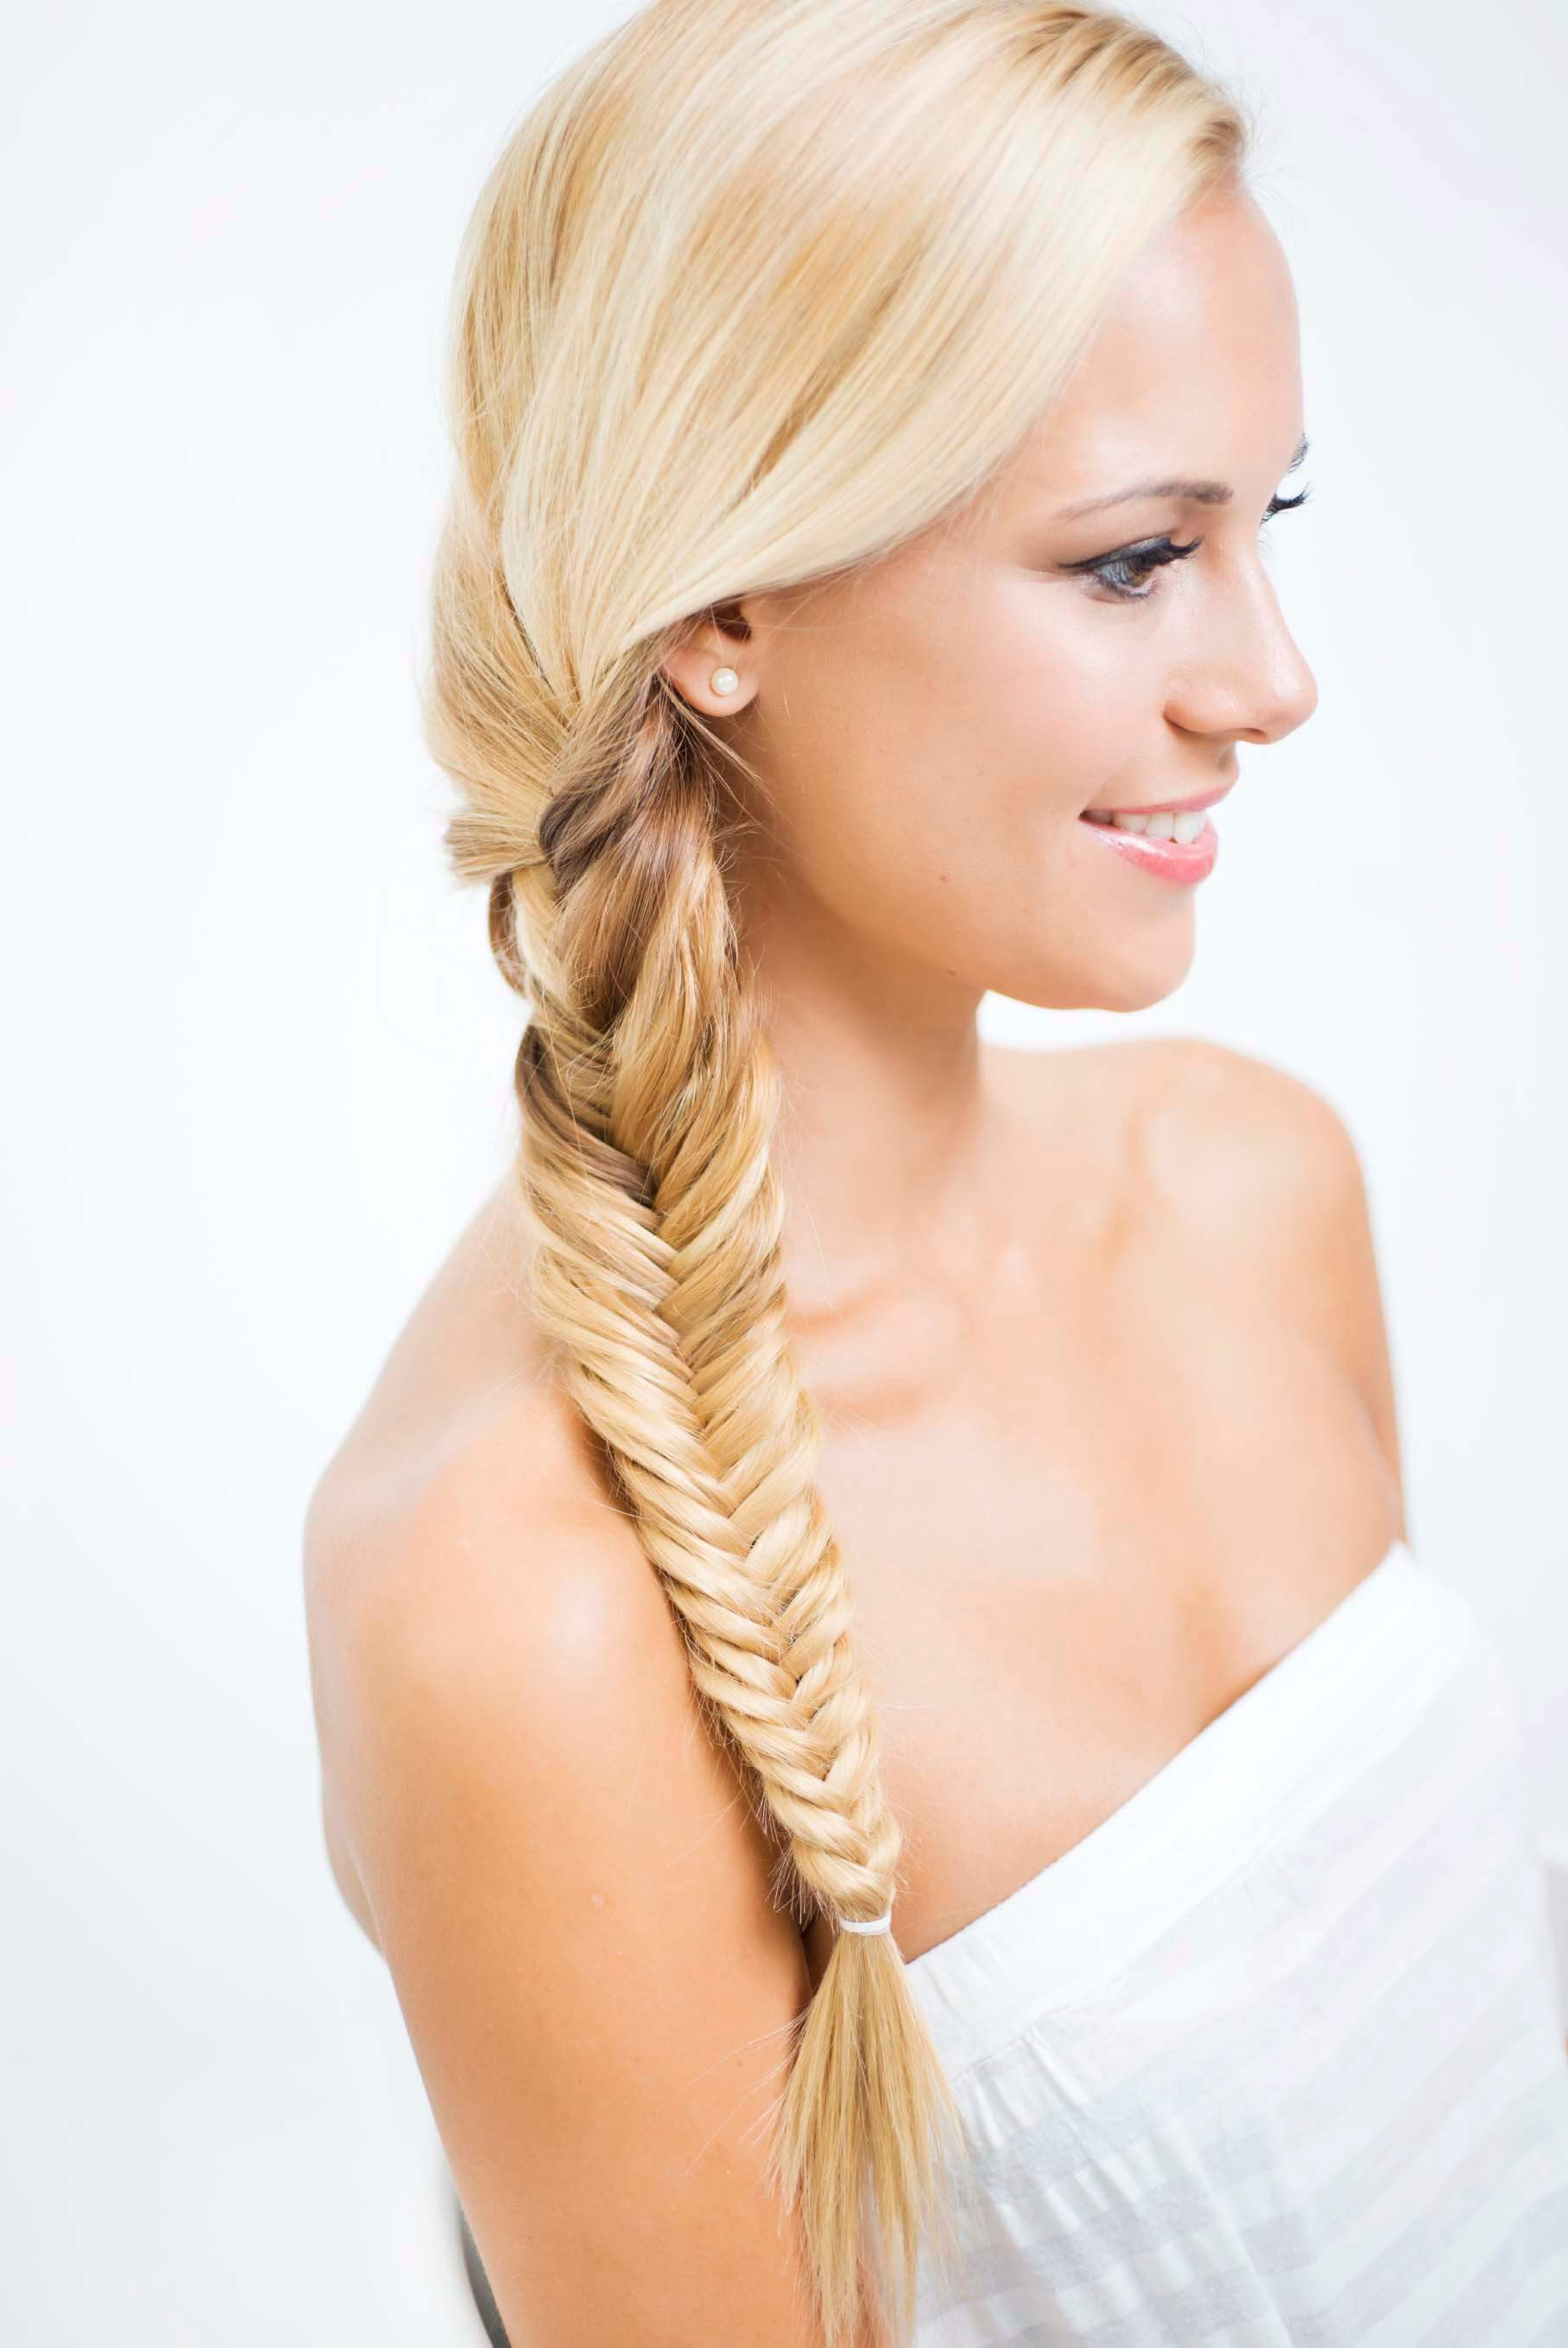 Hairstyles For Thin Hair Fashionable Ideas For Your Fine Hair Type